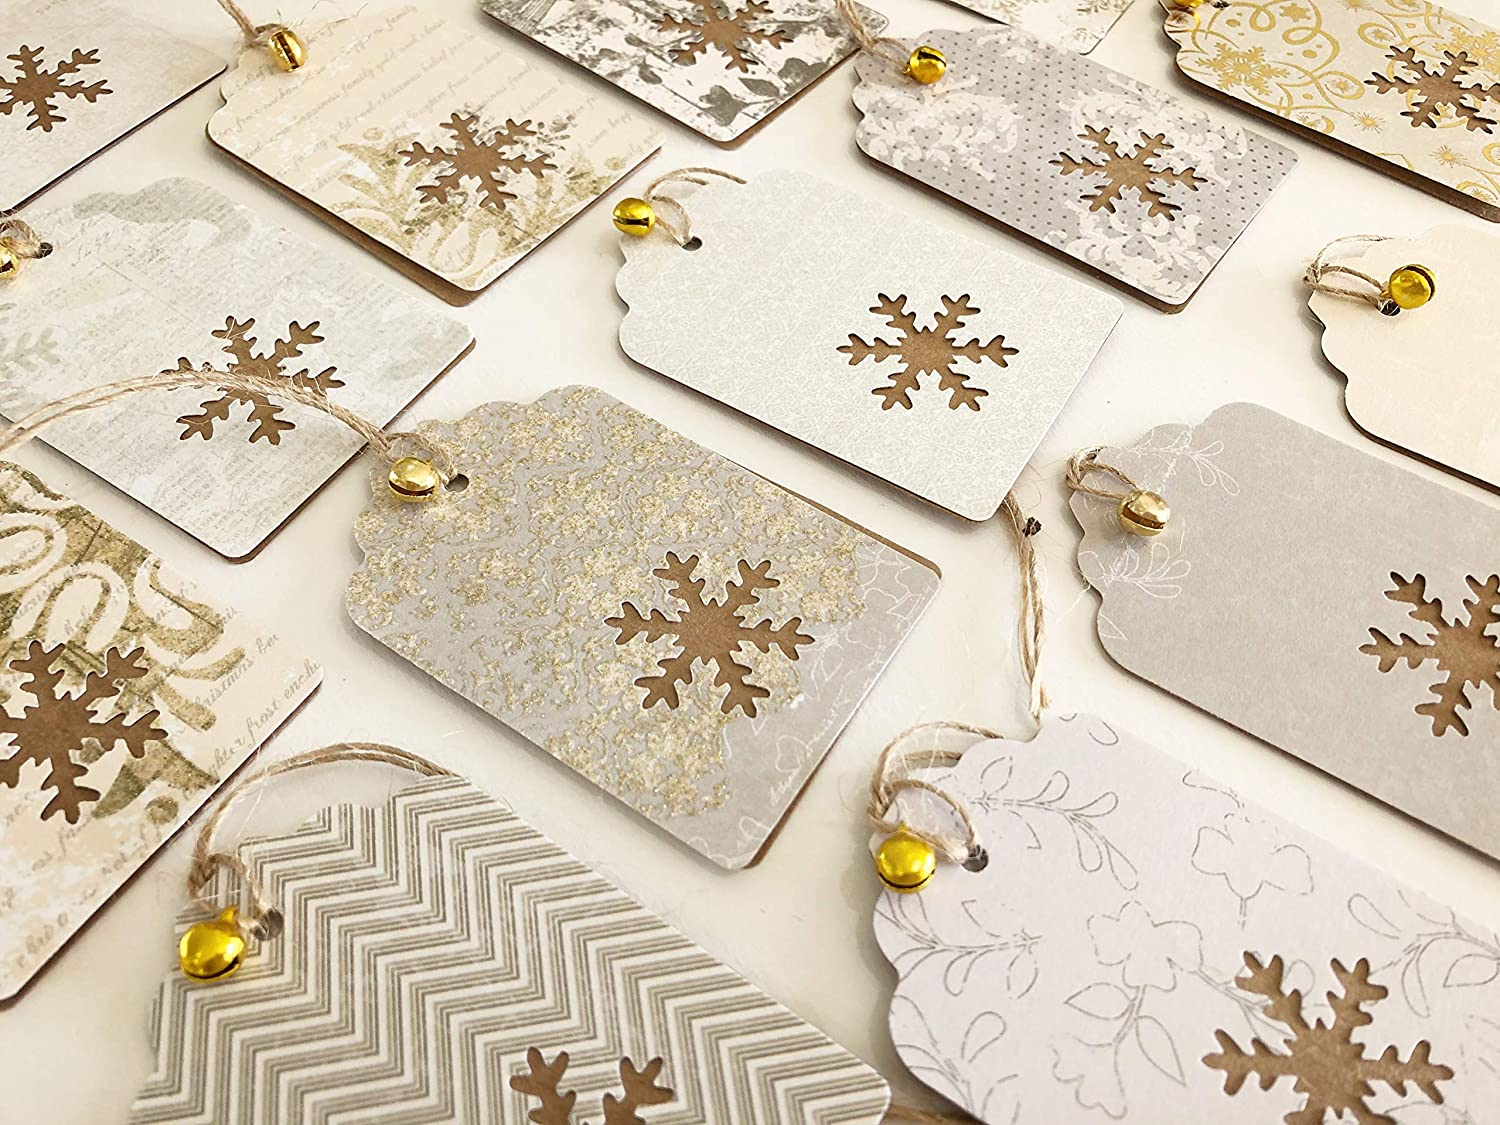 Christmas Gift Tags Handmade.Amazon Com 12x Luxury Gold Cream Kraft Handmade Christmas